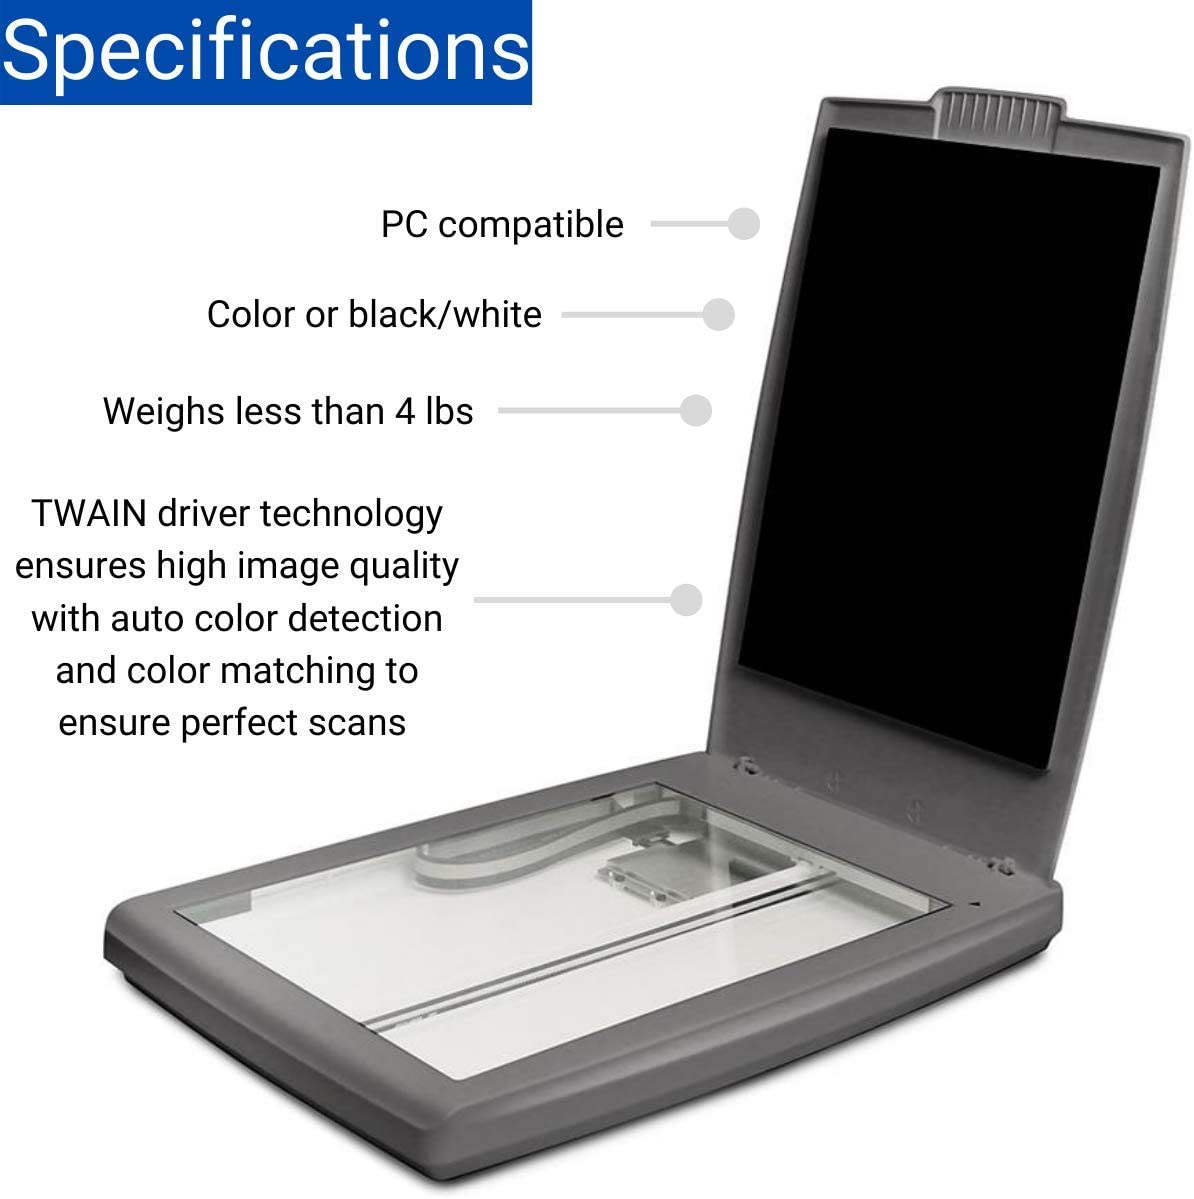 Visioneer 7800 Flatbed Color Photo and Document Scanner for PC with Tag That Photo Software, USB Powered: Electronics